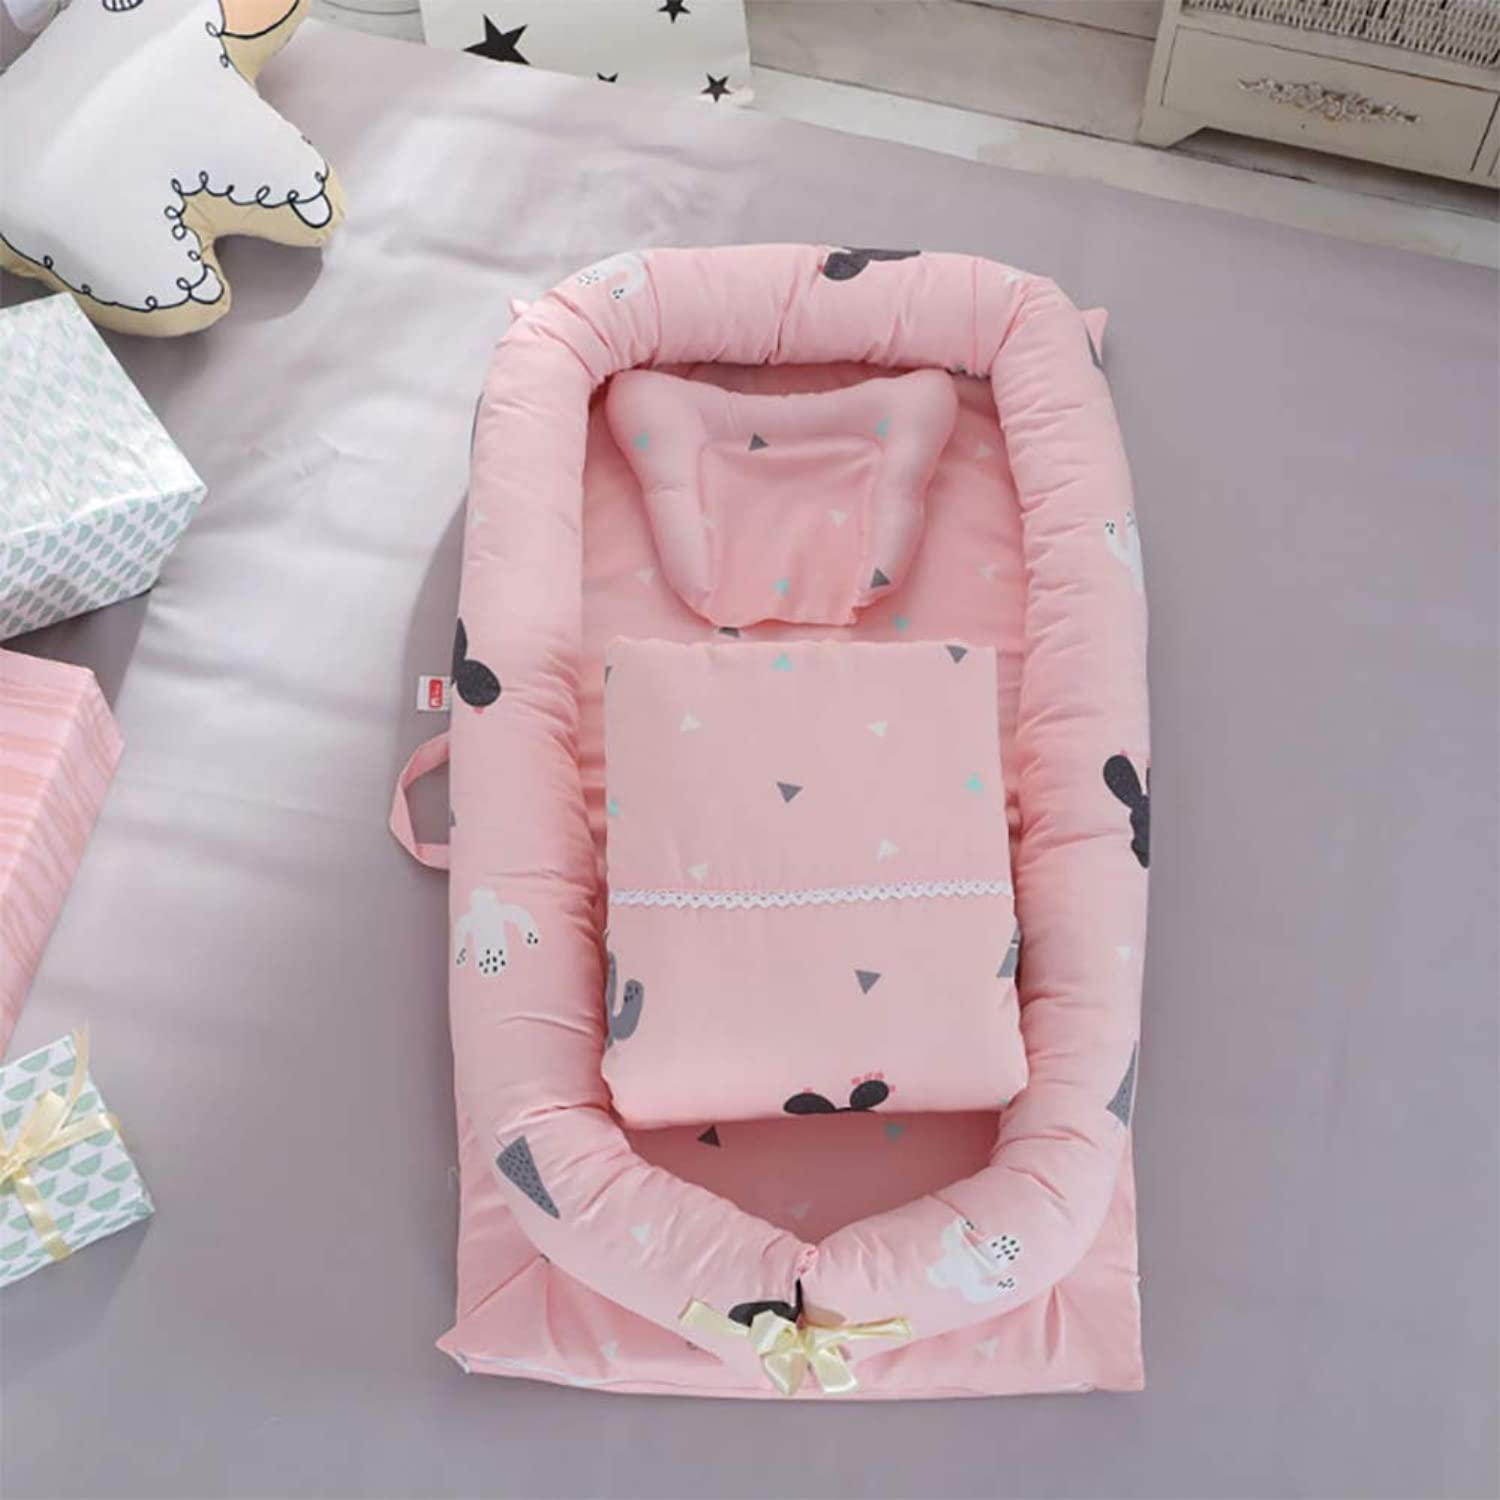 Crib Cotton Multi-Function Folding Portable Travel Baby Bionic Crib Suitable for Age 0-24 Months Baby (Removable Quilt),A